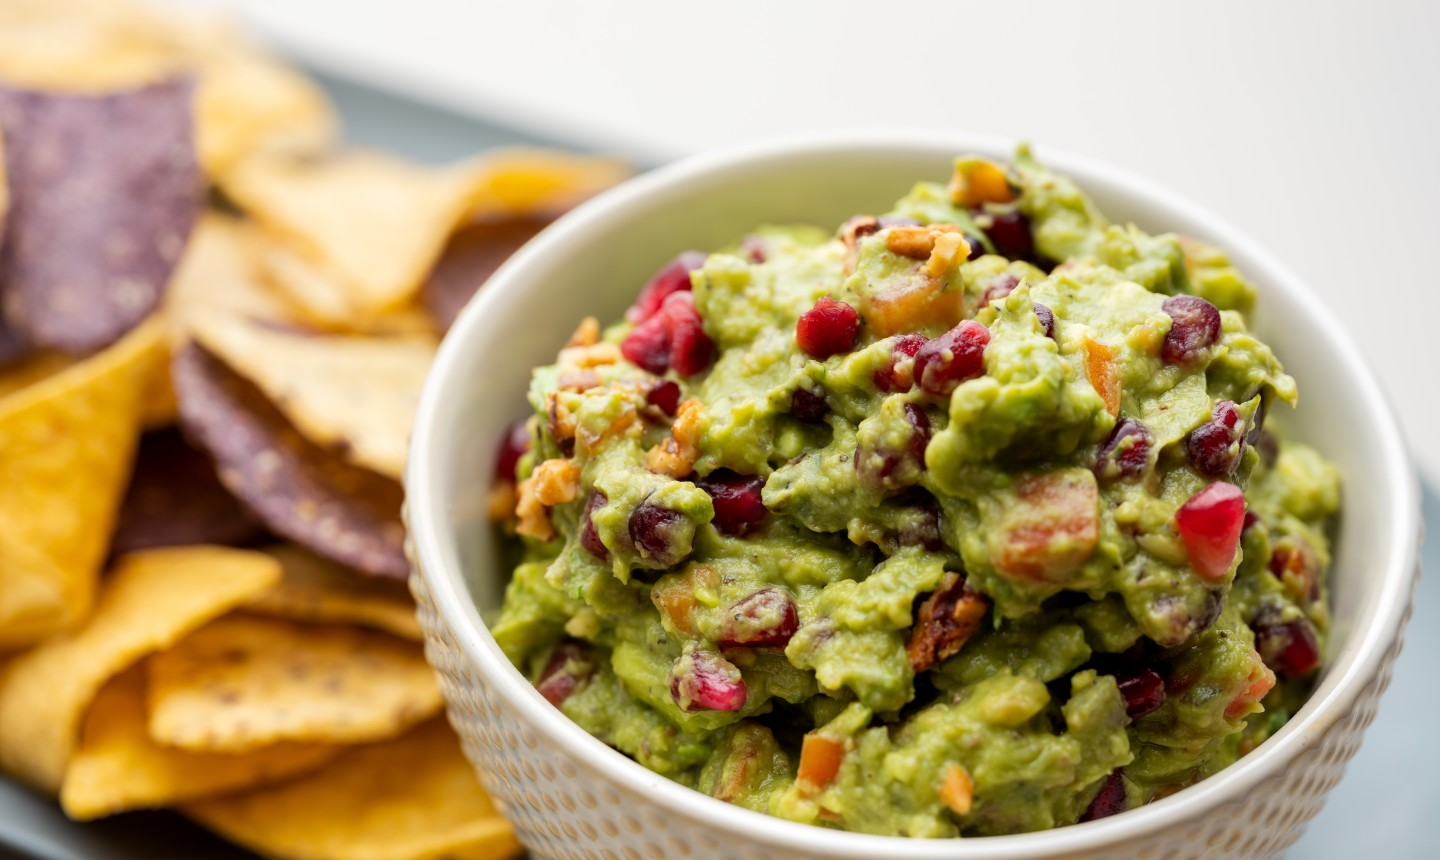 Pomegranate-Walnut Guacamole